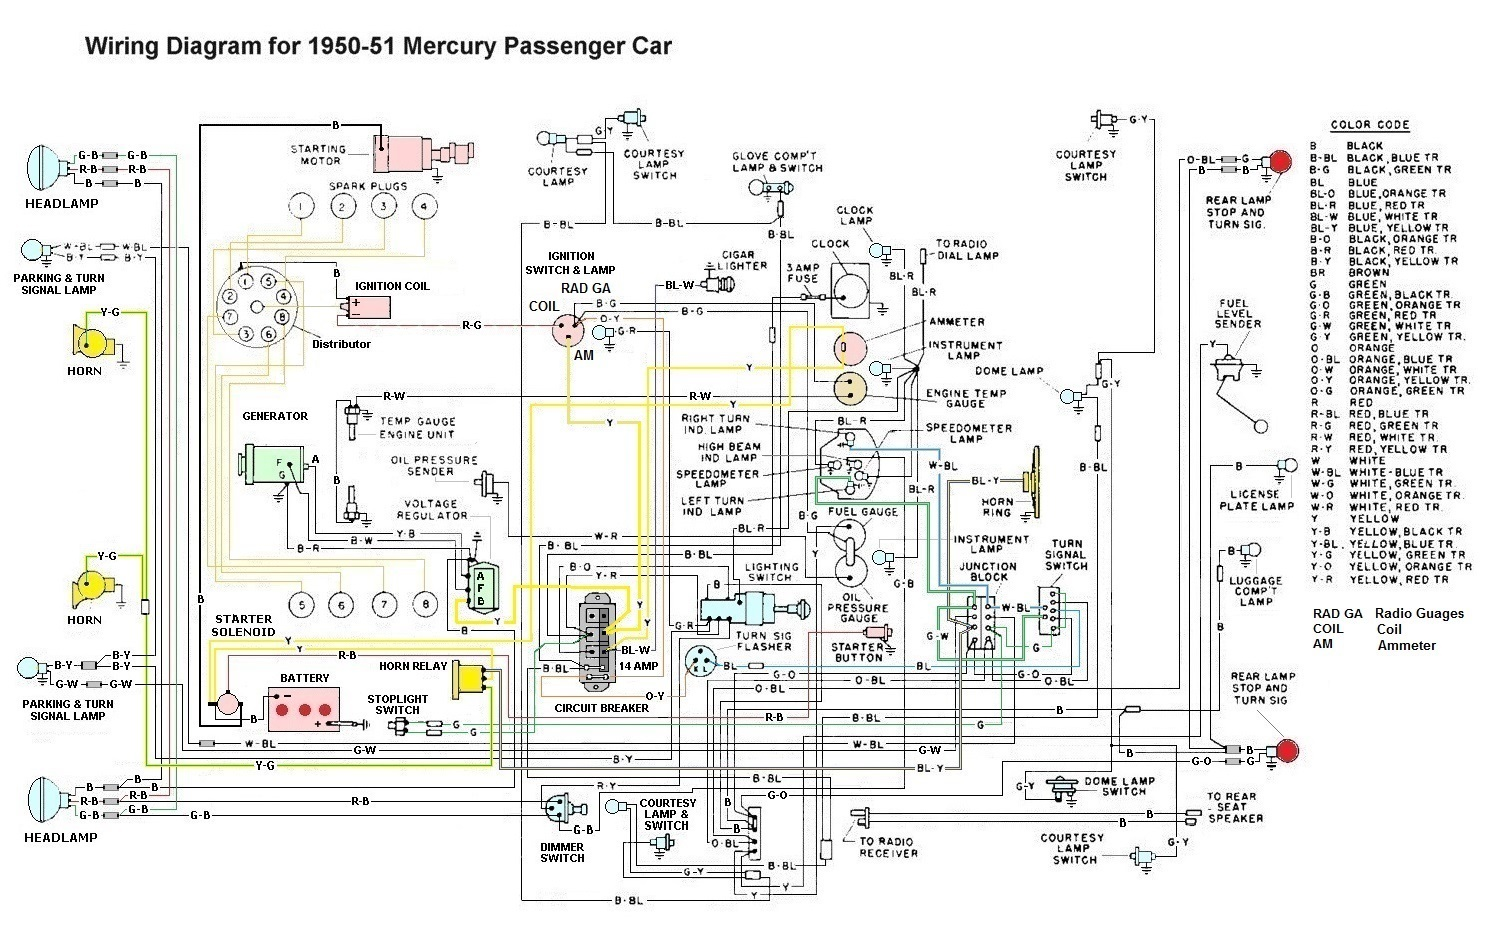 m51picswiringdiagram 1951 mercury, an american legacy mercury wiring diagram at webbmarketing.co